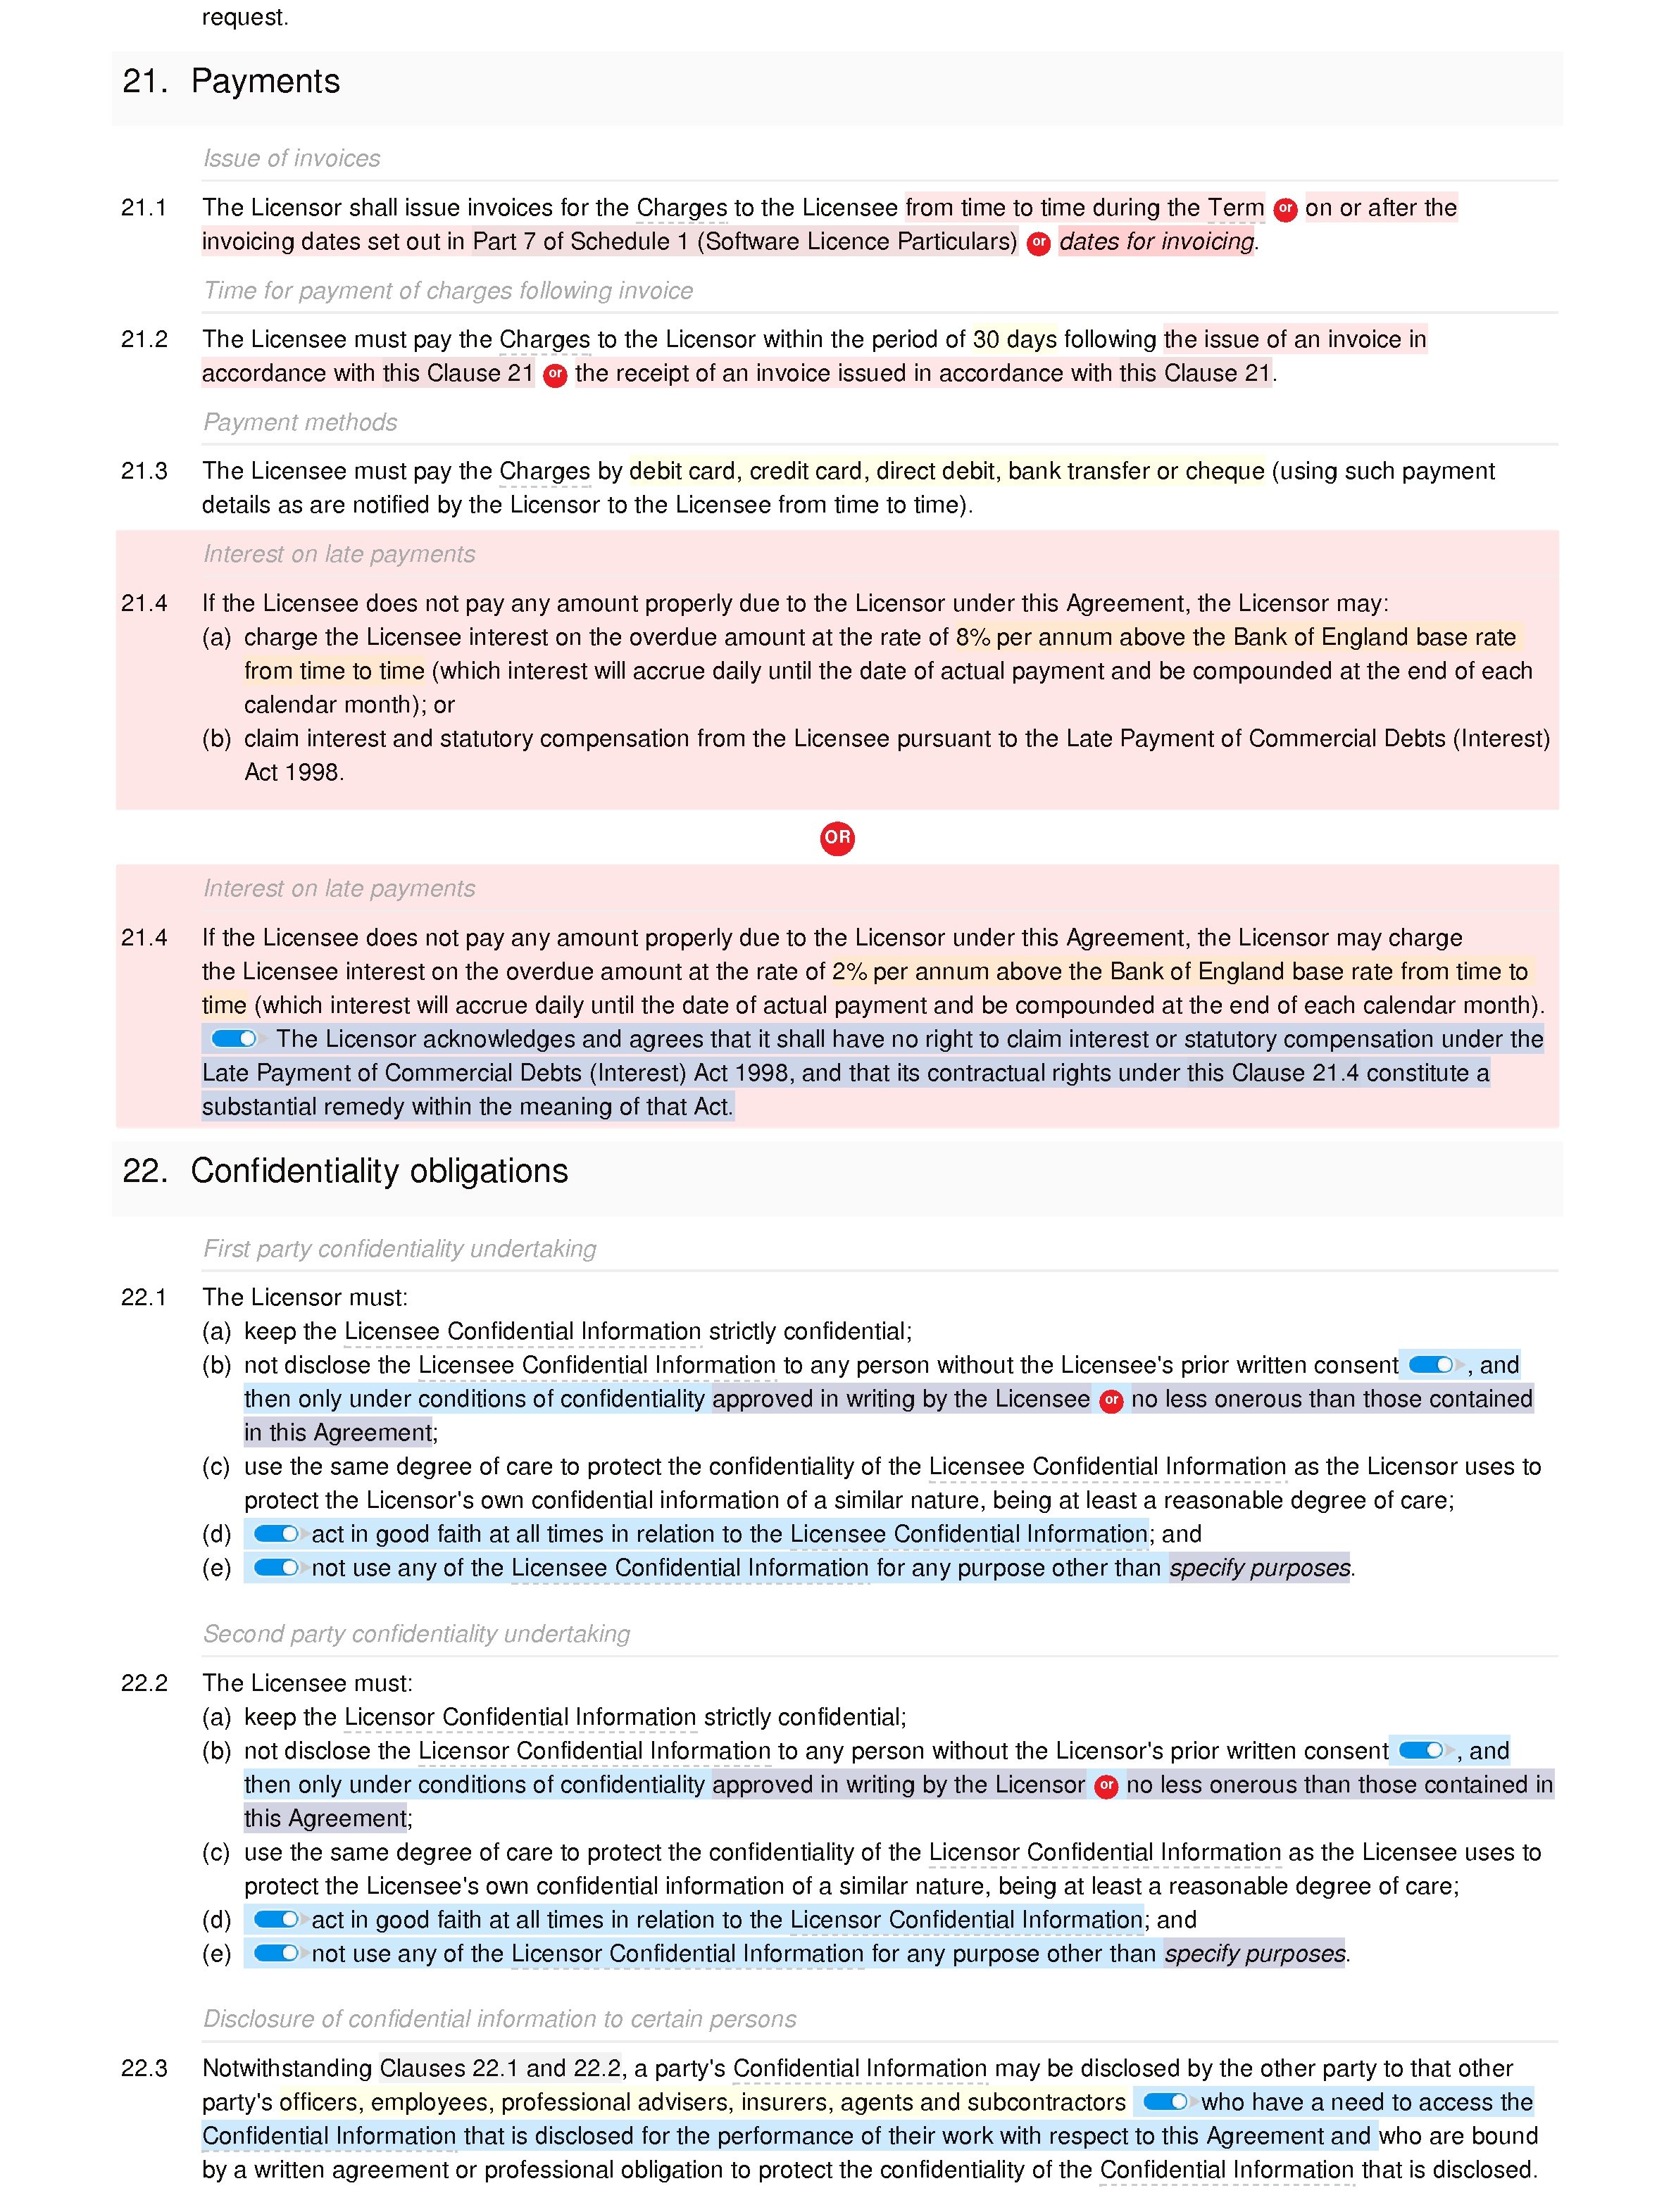 Software licence and maintenance agreement (premium) document editor preview